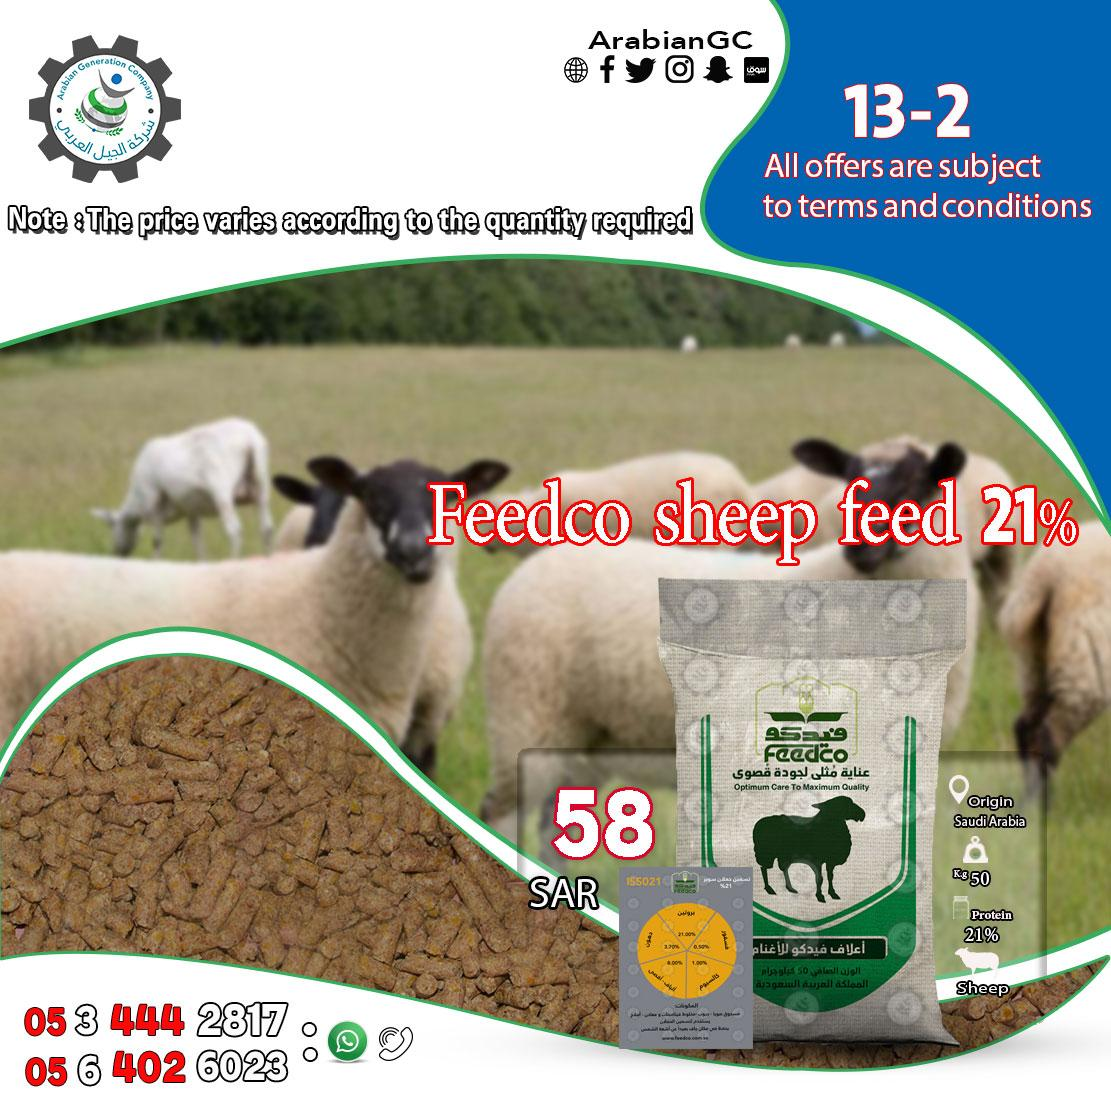 Feedco sheep feed sale from d.php?hash=2CNLS7864